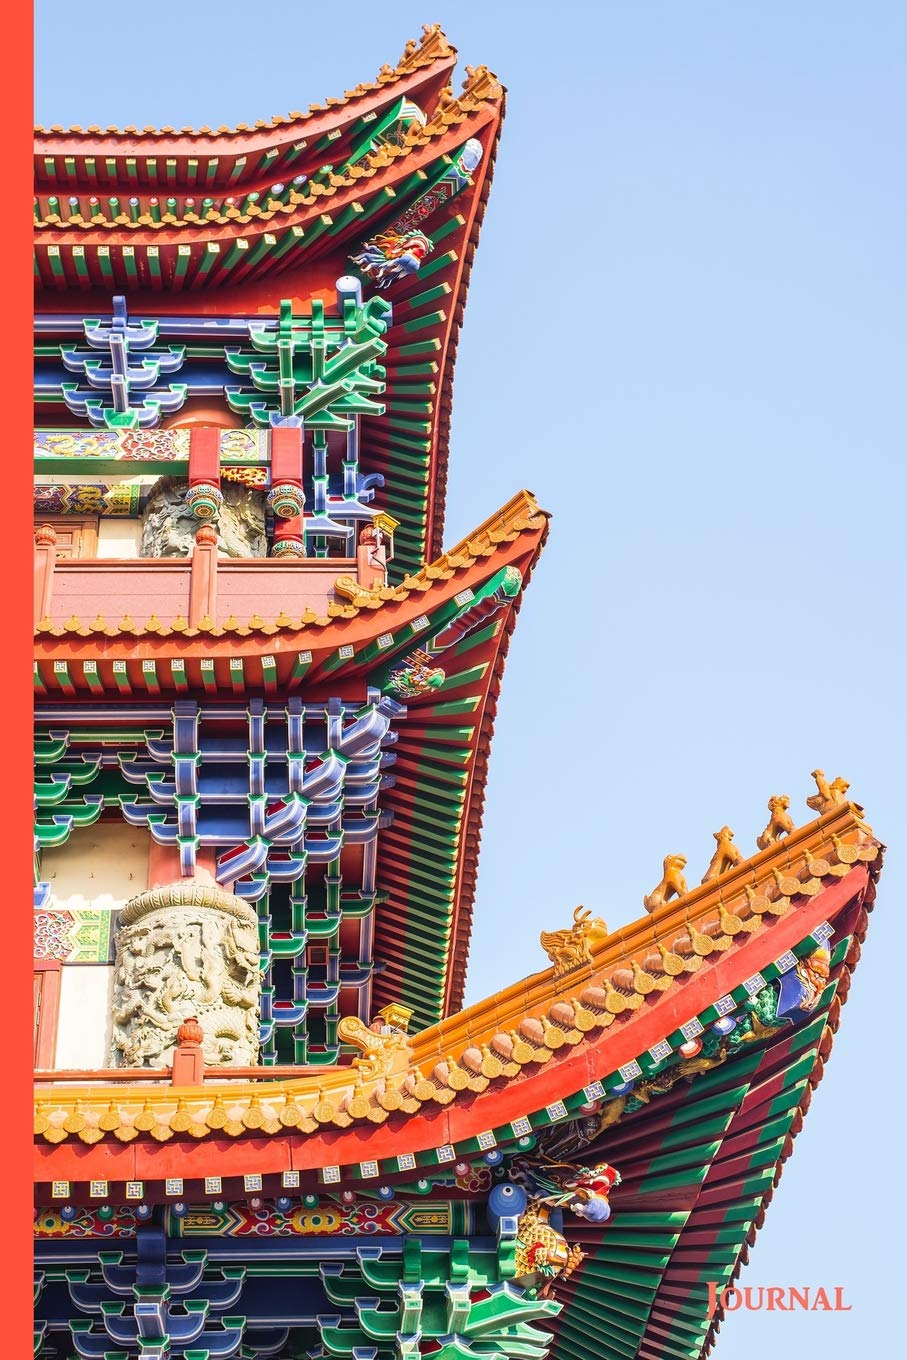 Amazon Com Pagoda Architecture Journal Ornate Buildings Architect Builder Design Chinese Asian Style 6 X 9 Notebook Diary Doodle Write Notes Sketch Pad Blank Book Building By Design Volume 20 9781726191388 All About Me Books